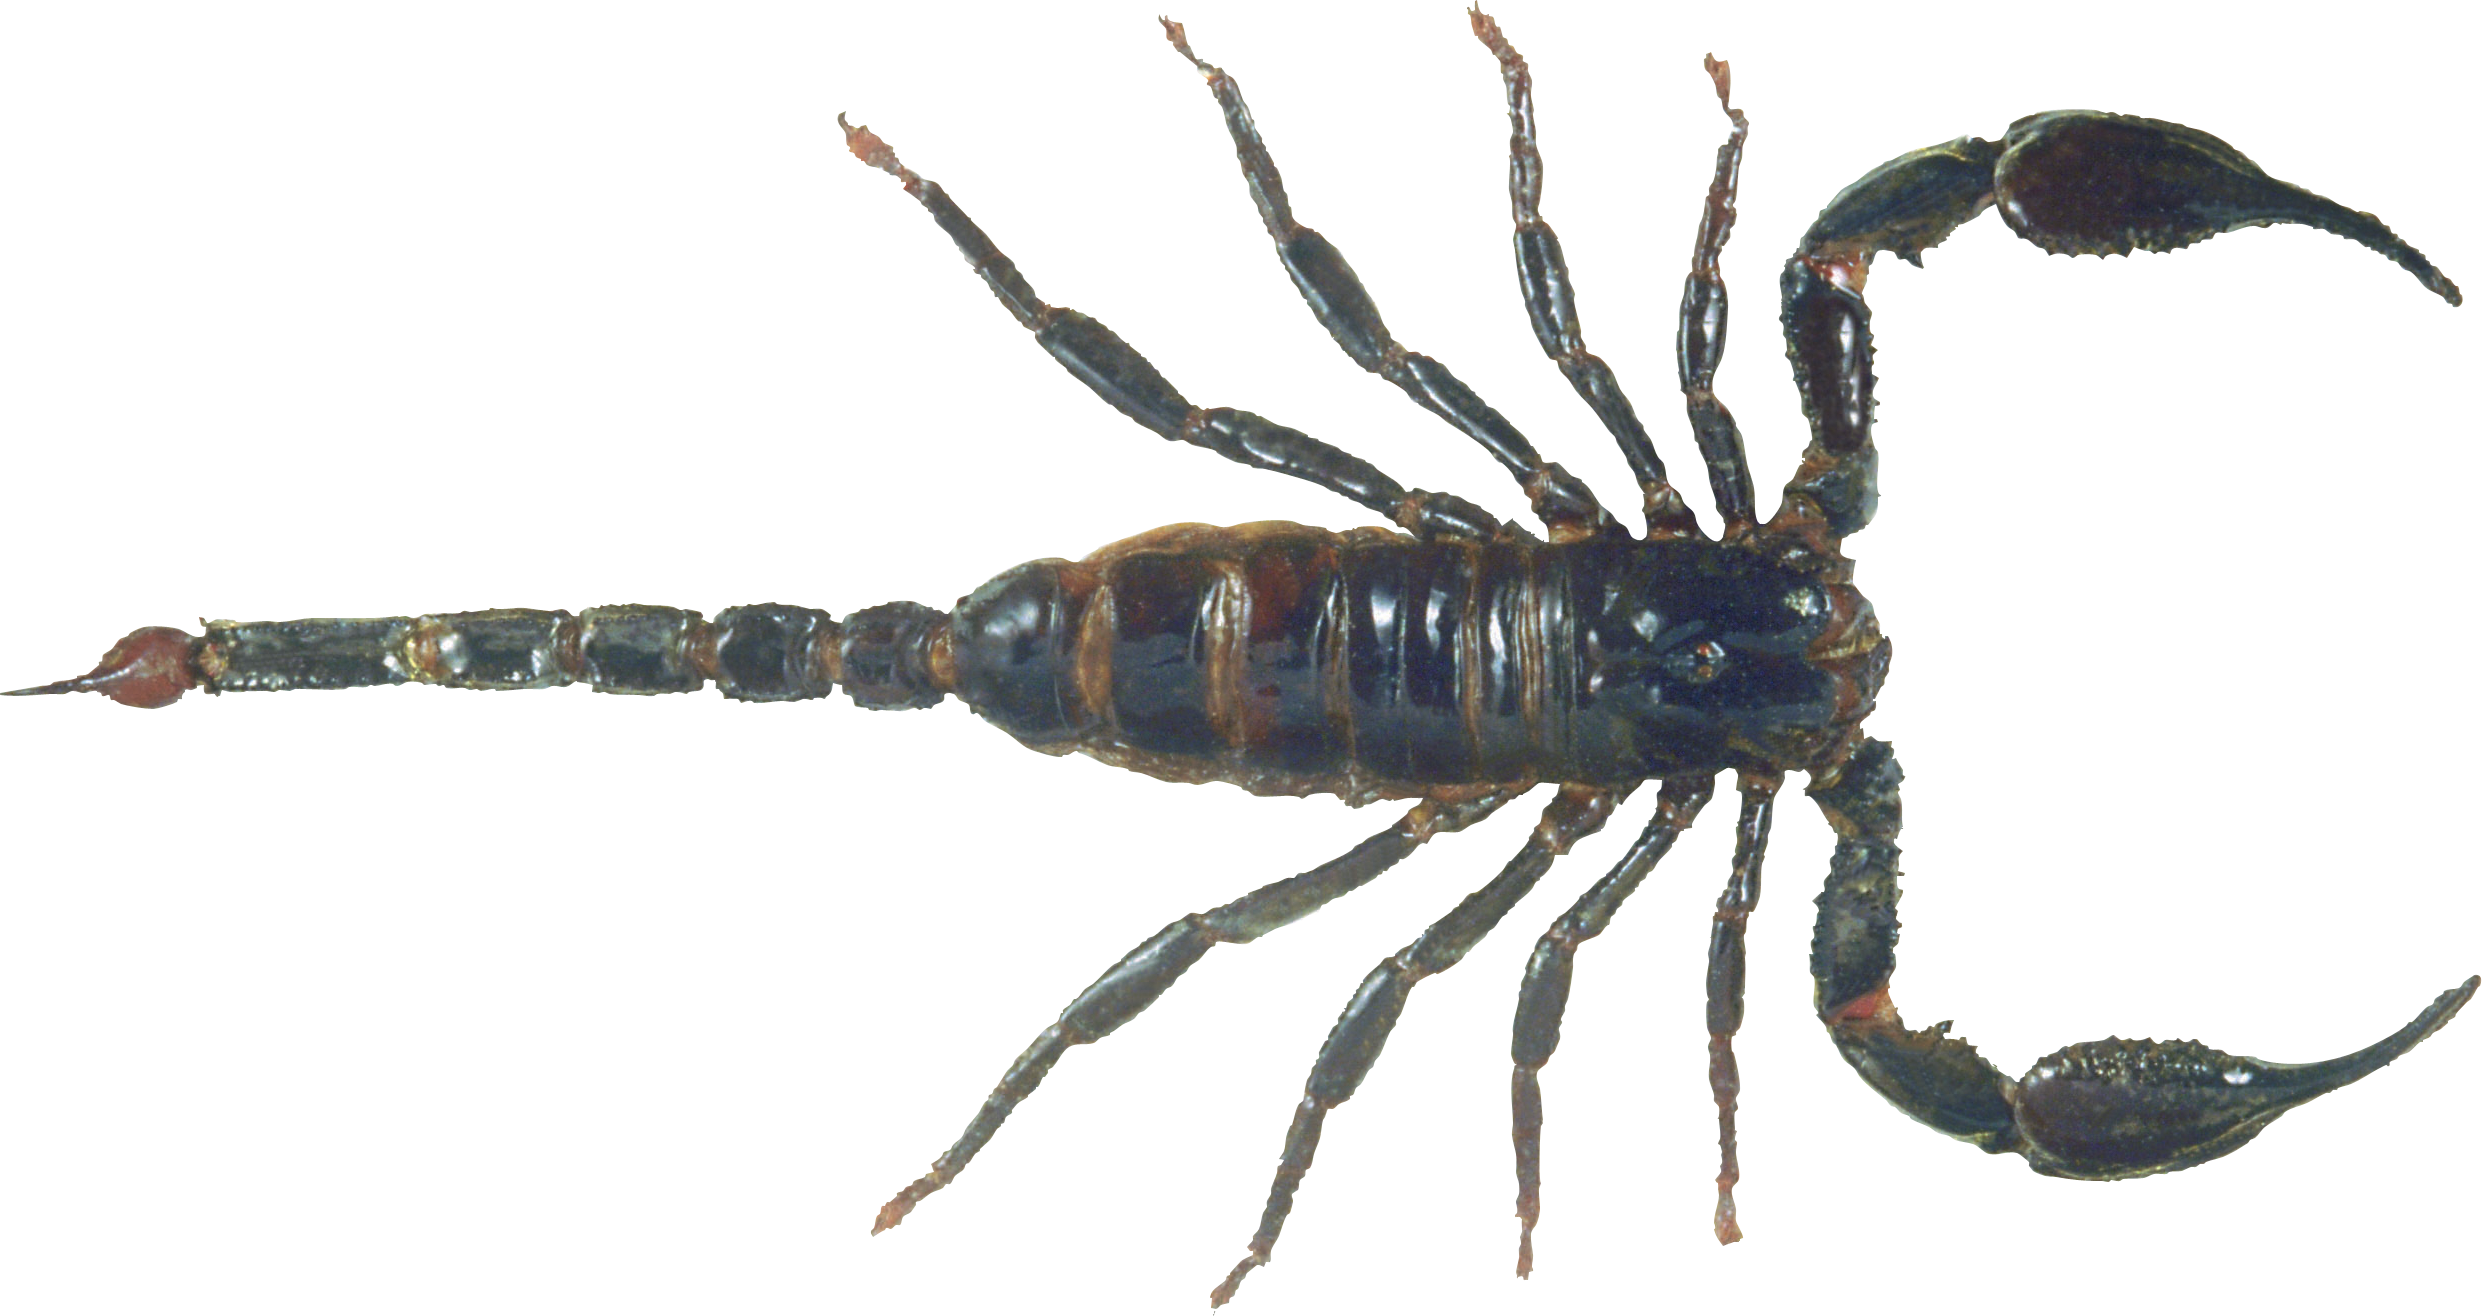 Scorpion Png Image Scorpion Animals Scorpio Zodiac